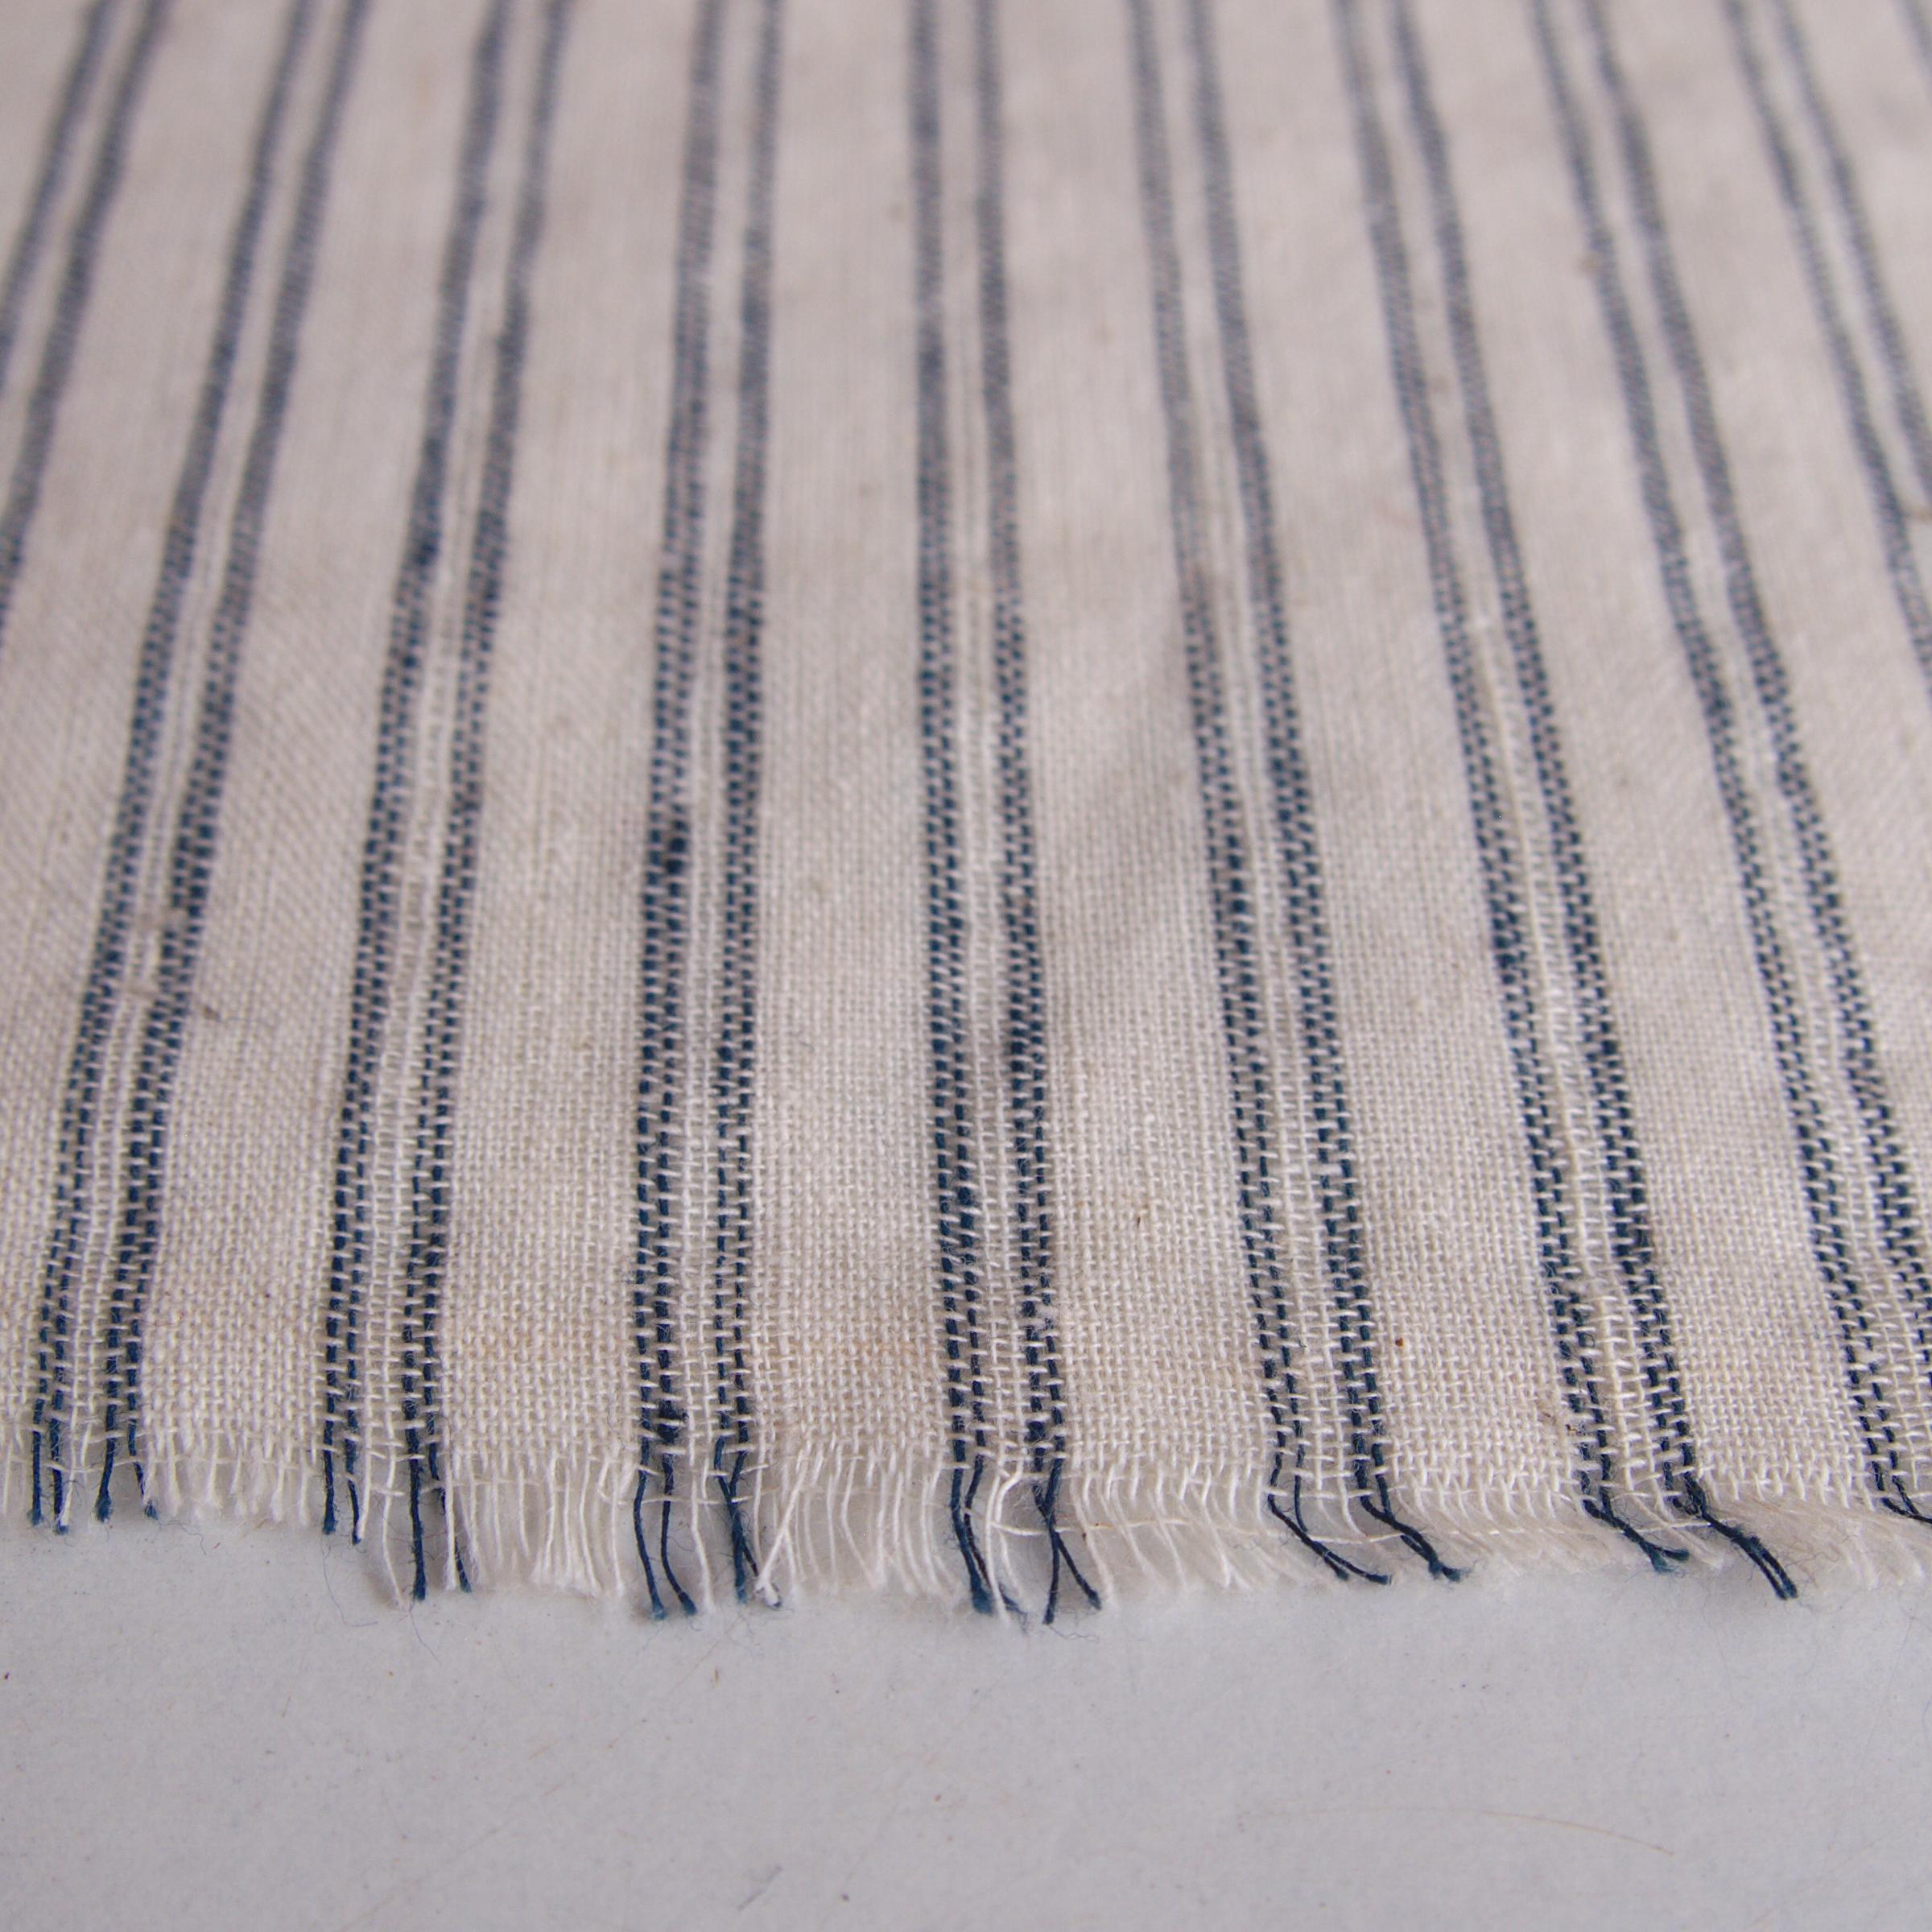 100% Handloom Woven Cotton - Pinstripes - White Warp & Weft, White and Natural Indigo Warp - Close Up